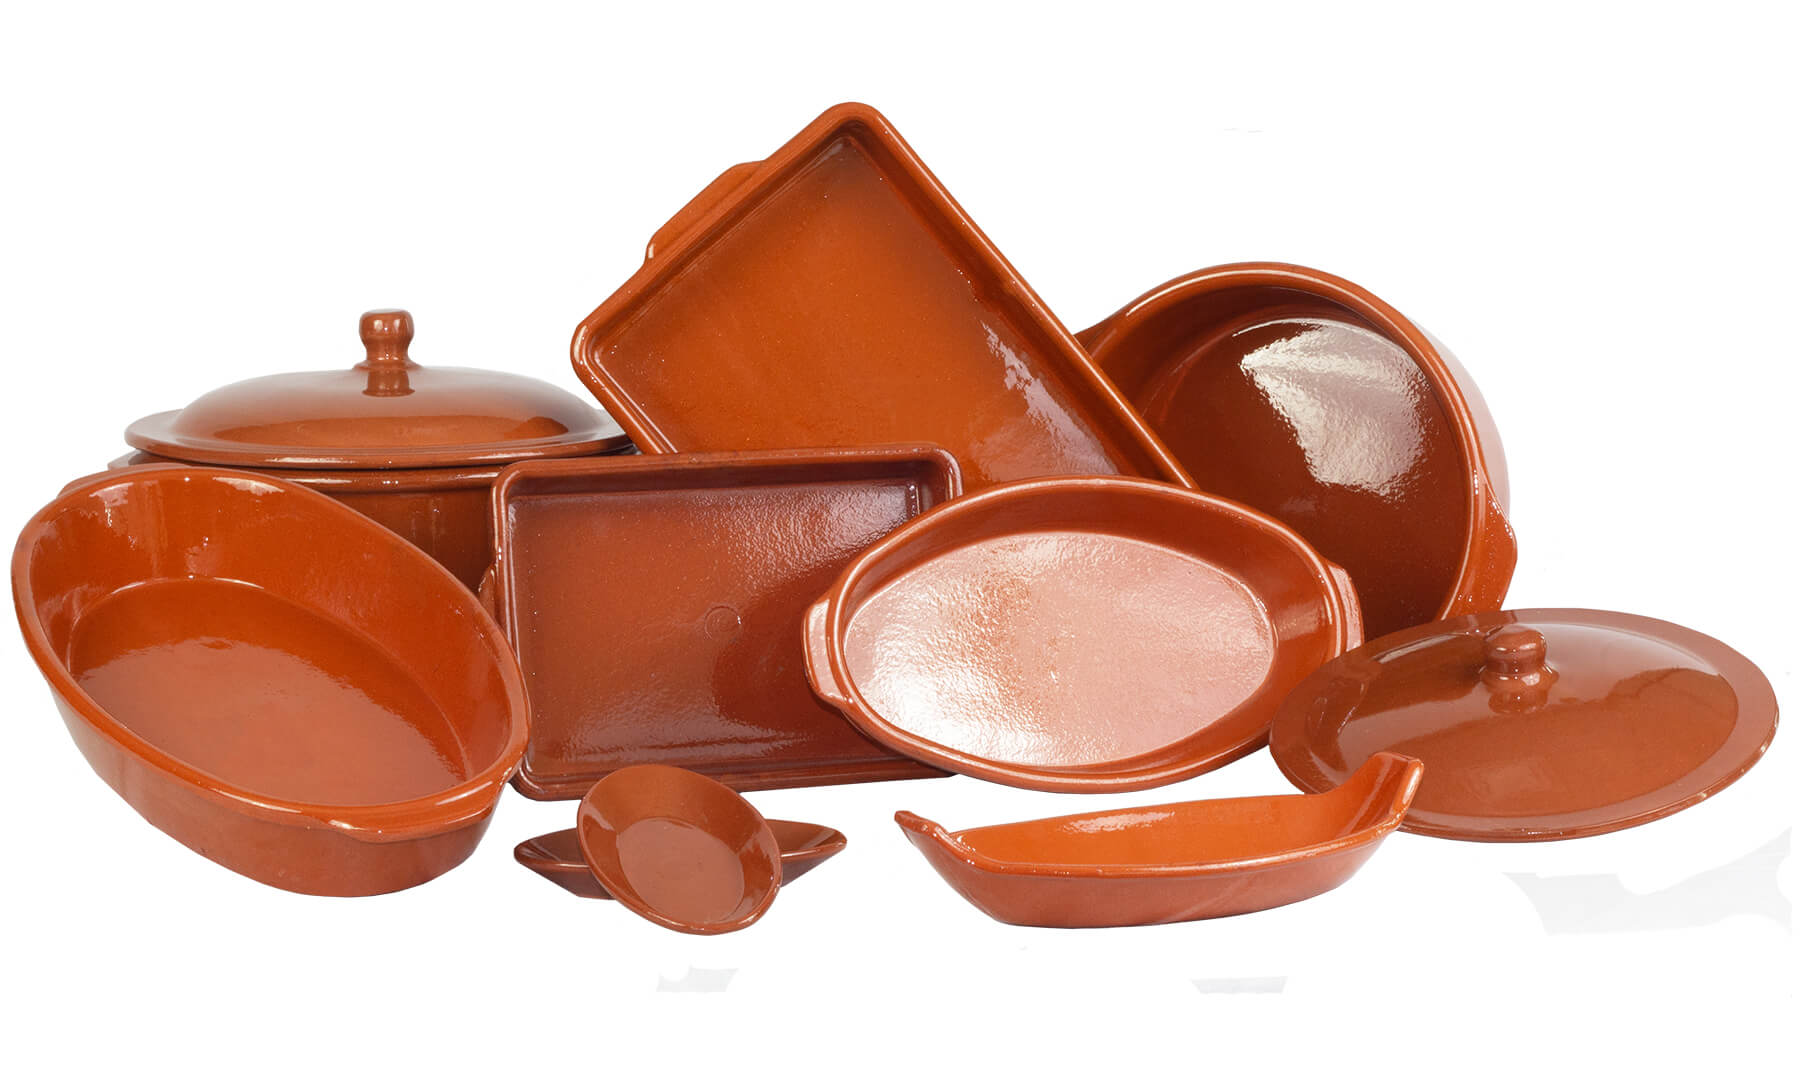 Group of Terracotta Bakeware Pieces